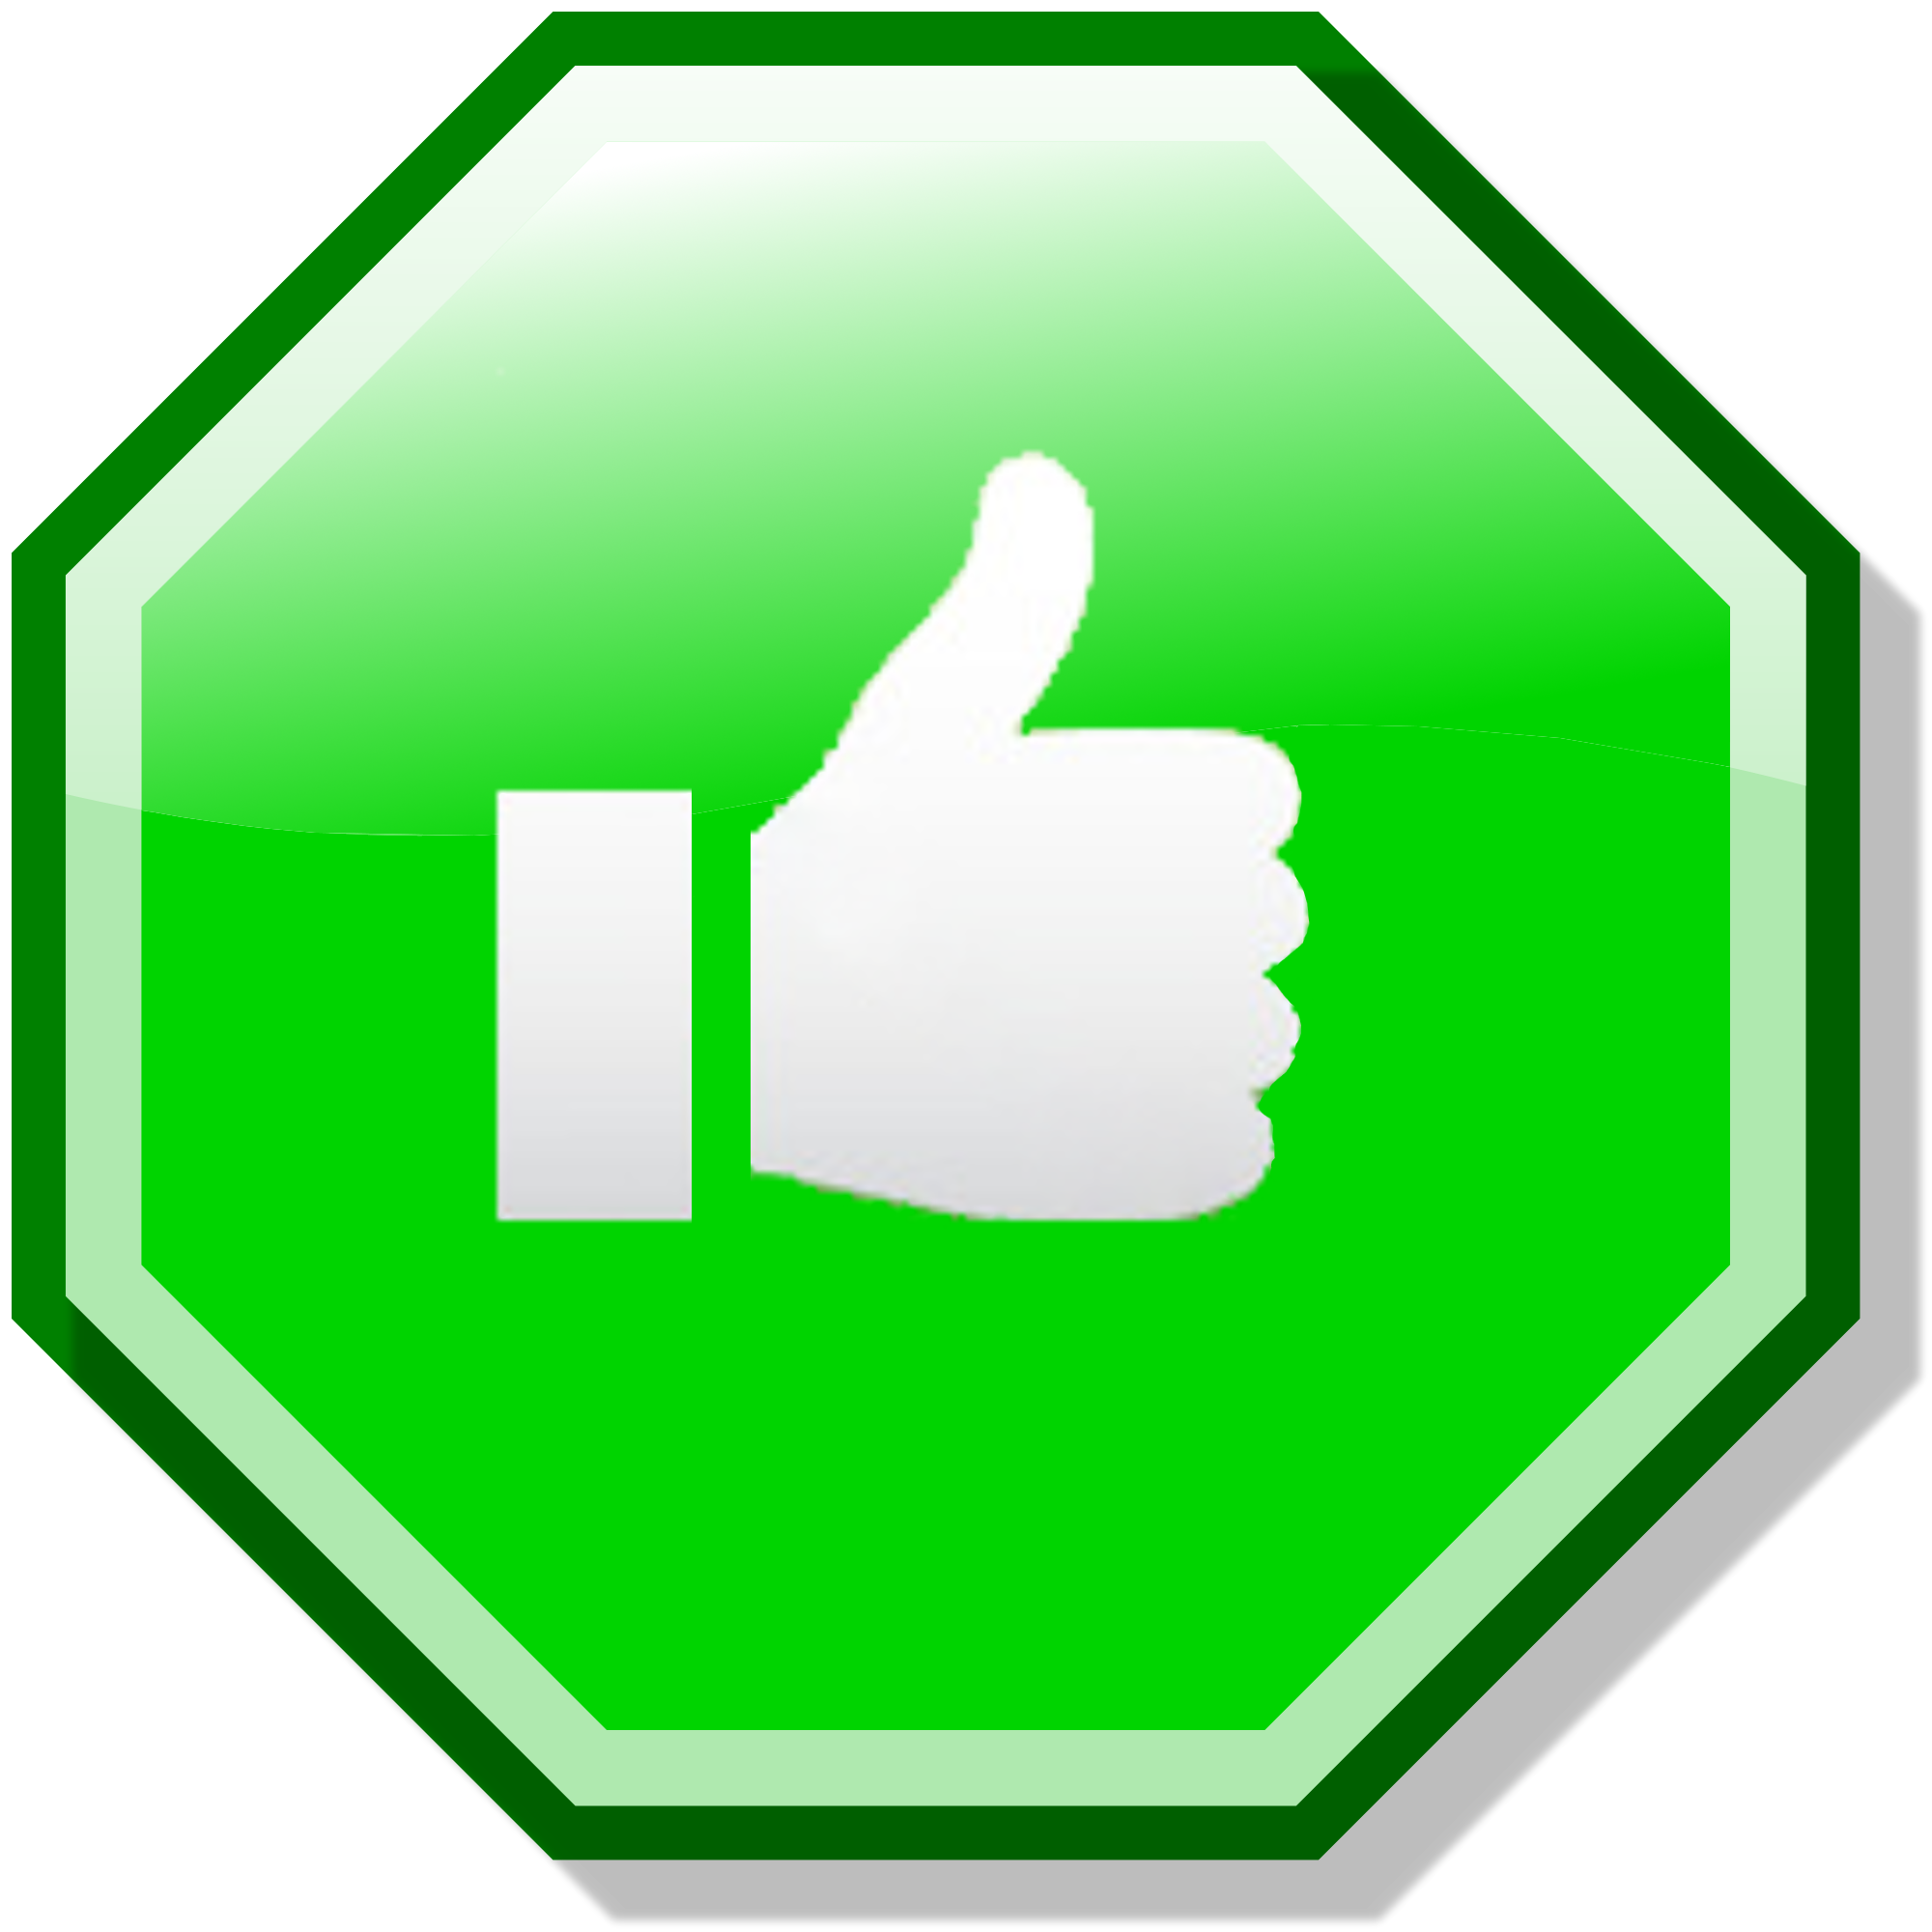 Ok Green Png image #3118